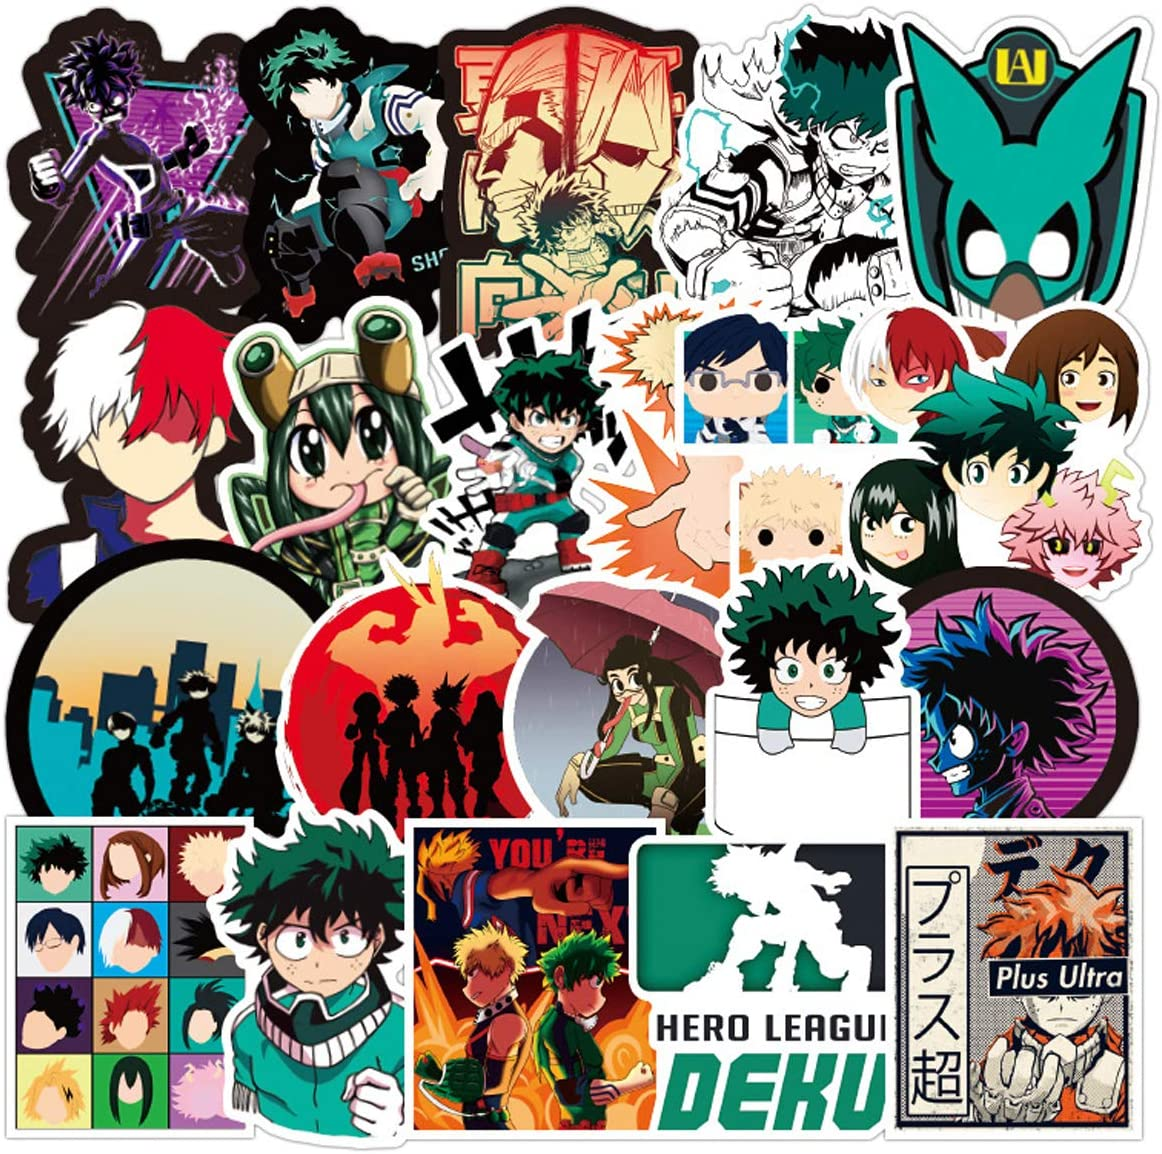 Acekar My Hero Academia Stickers[100pcs] Waterproof for Decal Laptop Hydro Flask Water Bottle Car Cup Computer Guitar Skateboard Luggage Bike Bumper, Kid Gift (Hero Academia100Pcs)